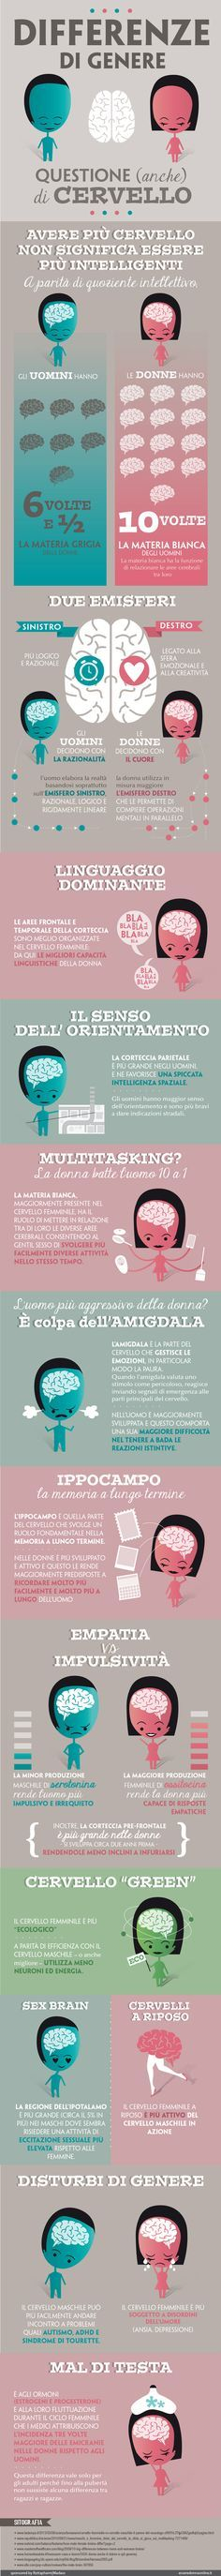 Differenze di genere? Questione anche di cervello - Infografica di Esseredonnaonline -design Kleland studio di Alice Borghi , brain woman vs man